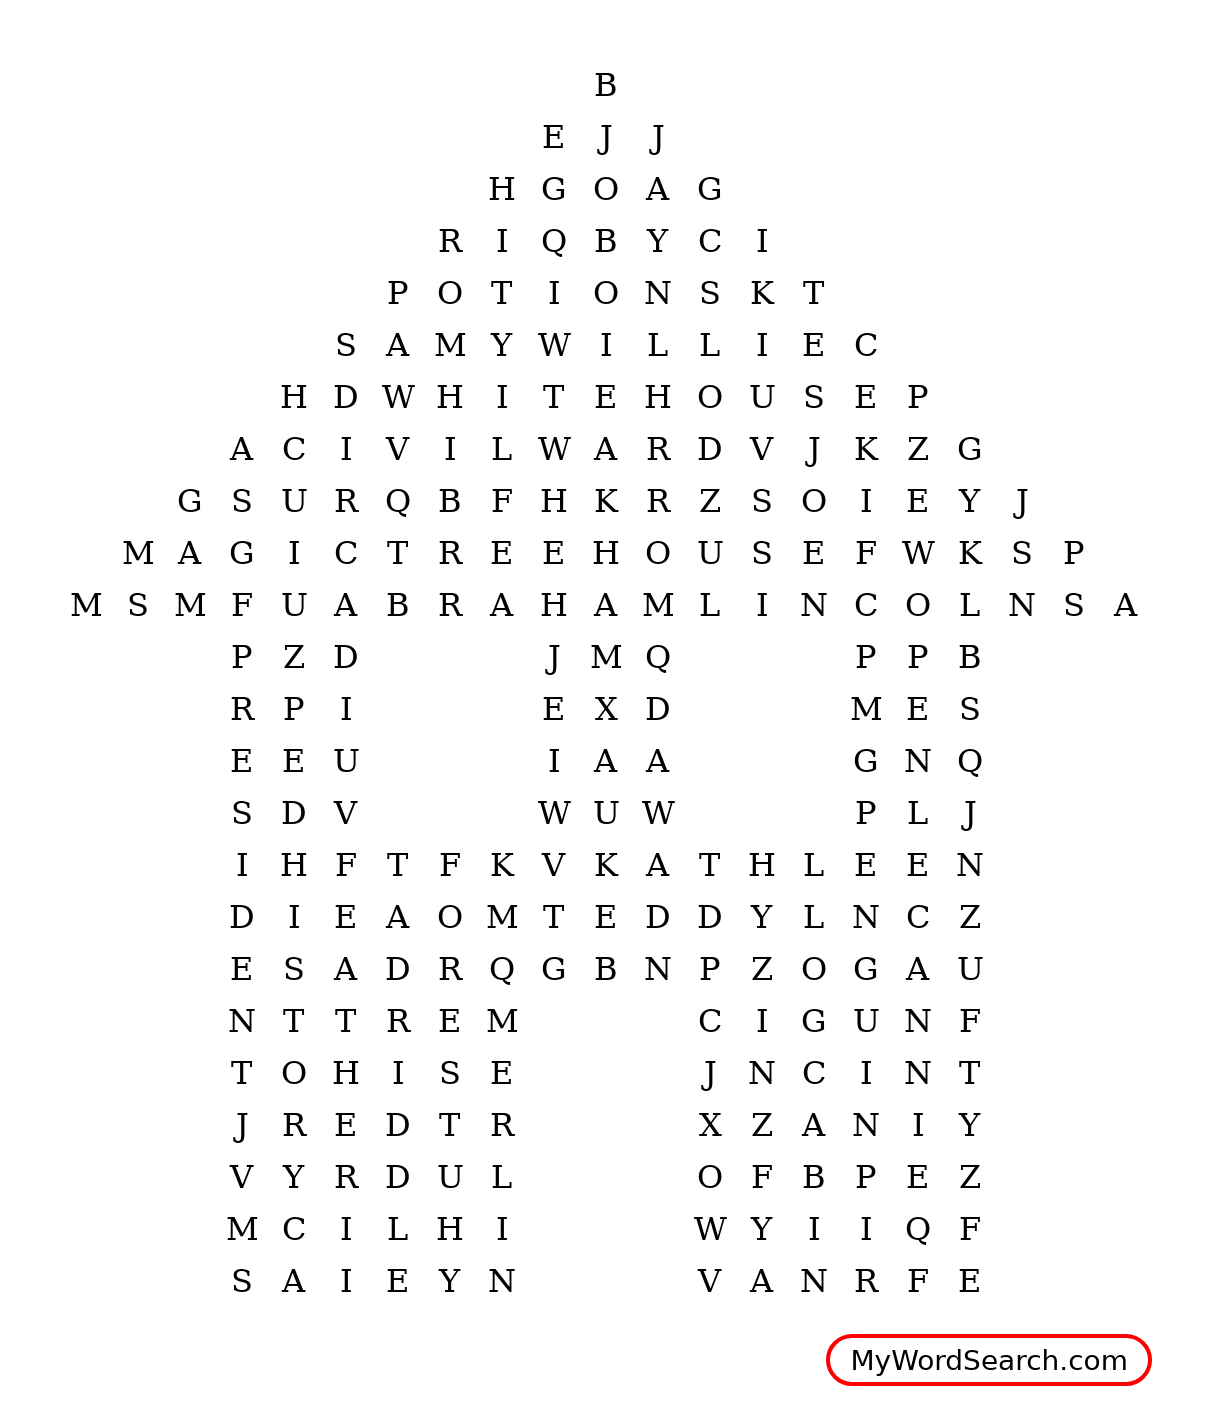 Magic Tree House Word Search